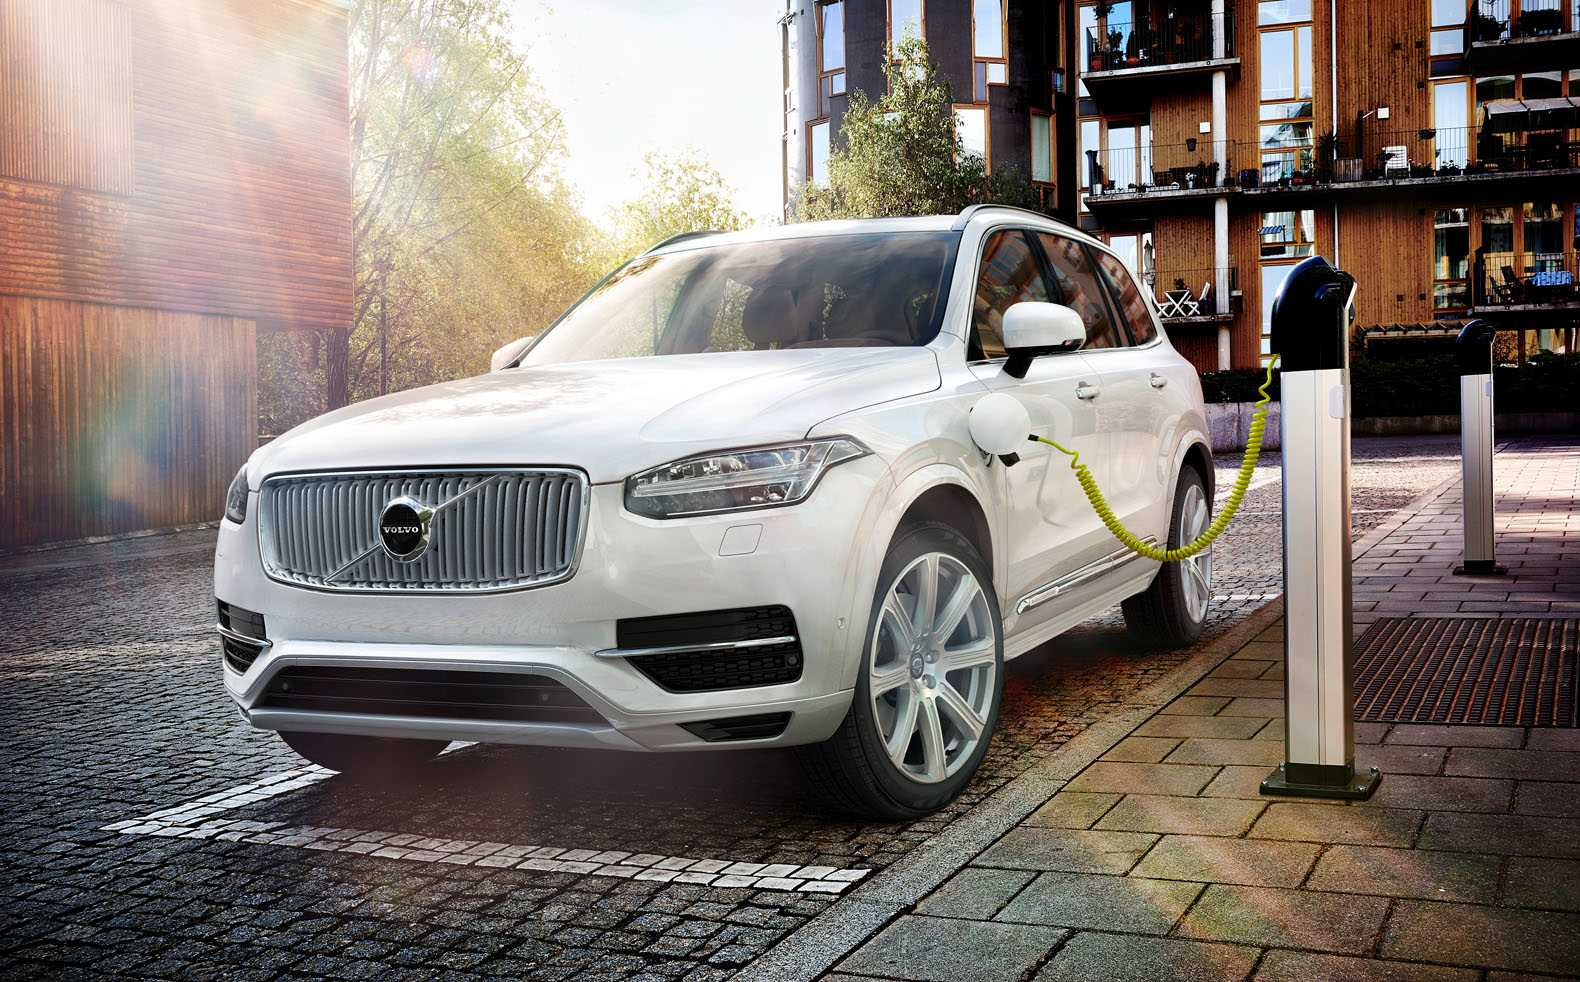 Volvo Reveals New Compact Modular Architecture Platform Details: Electric Vehicle to Come in 2019